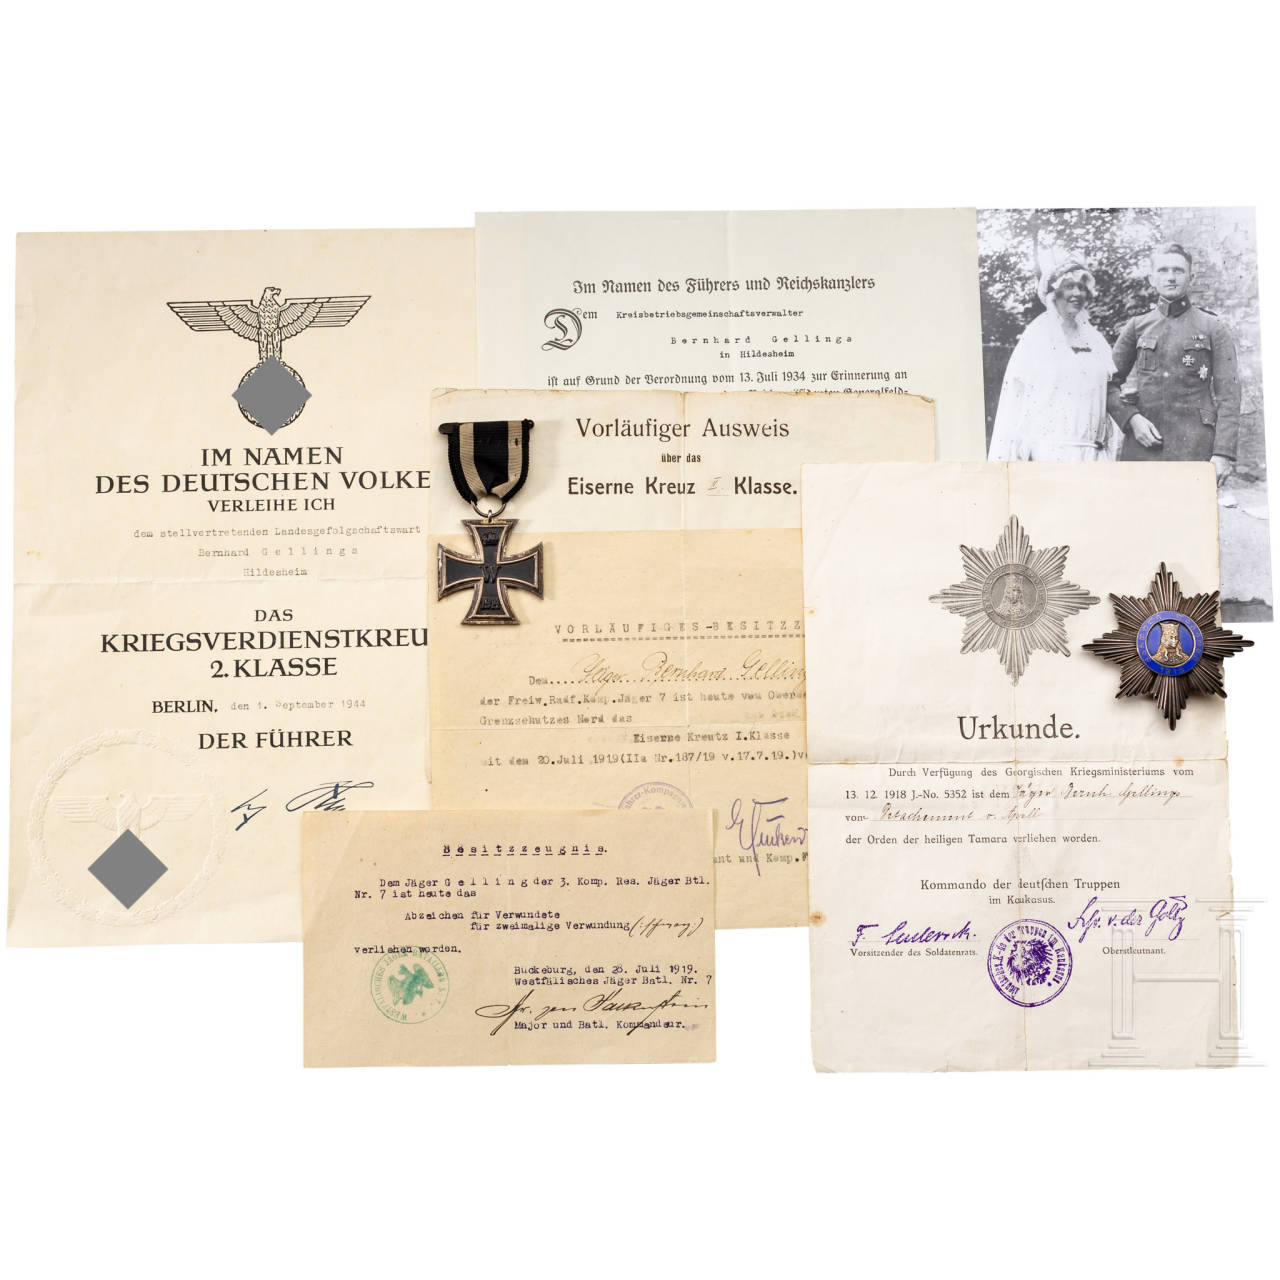 Order and document estate of the rifleman Bernhard Gellings as wearer of the Tamara order